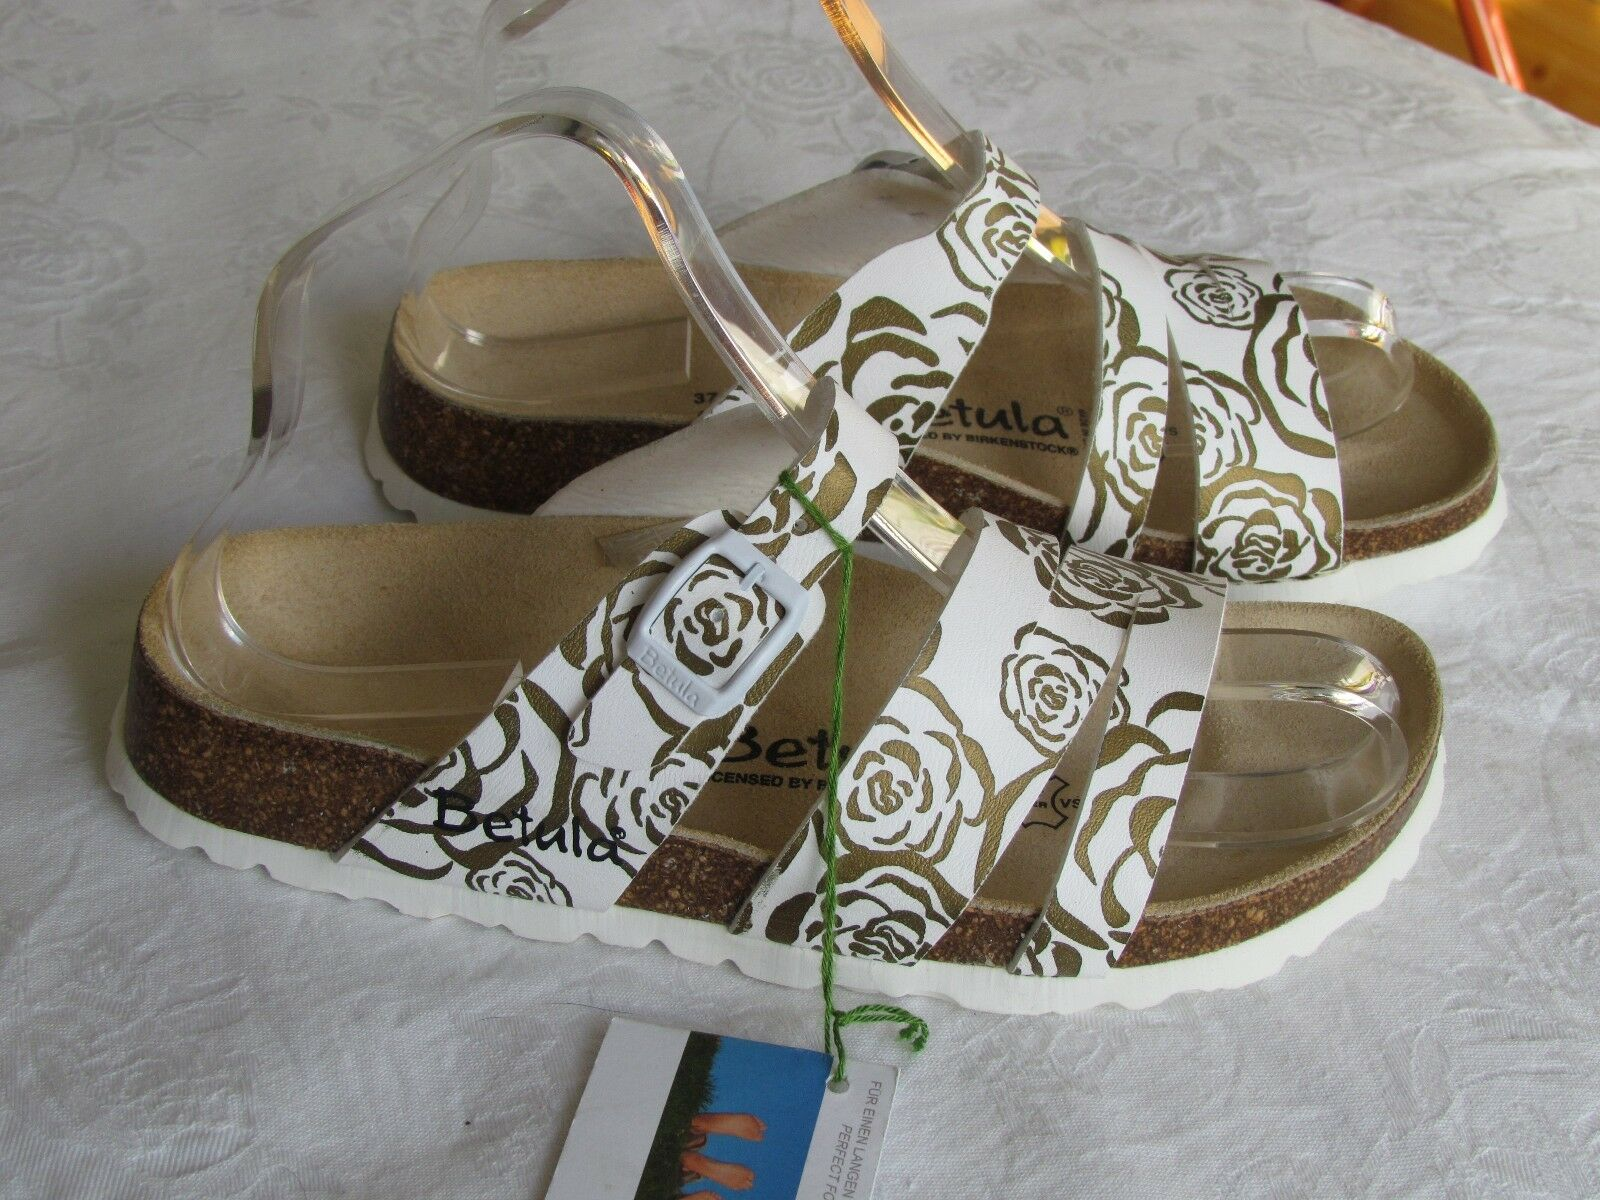 Último gran descuento NEW Betula By Birkenstock Ladies White Gold Floral Mules Sandals Size 4.5 EU 37